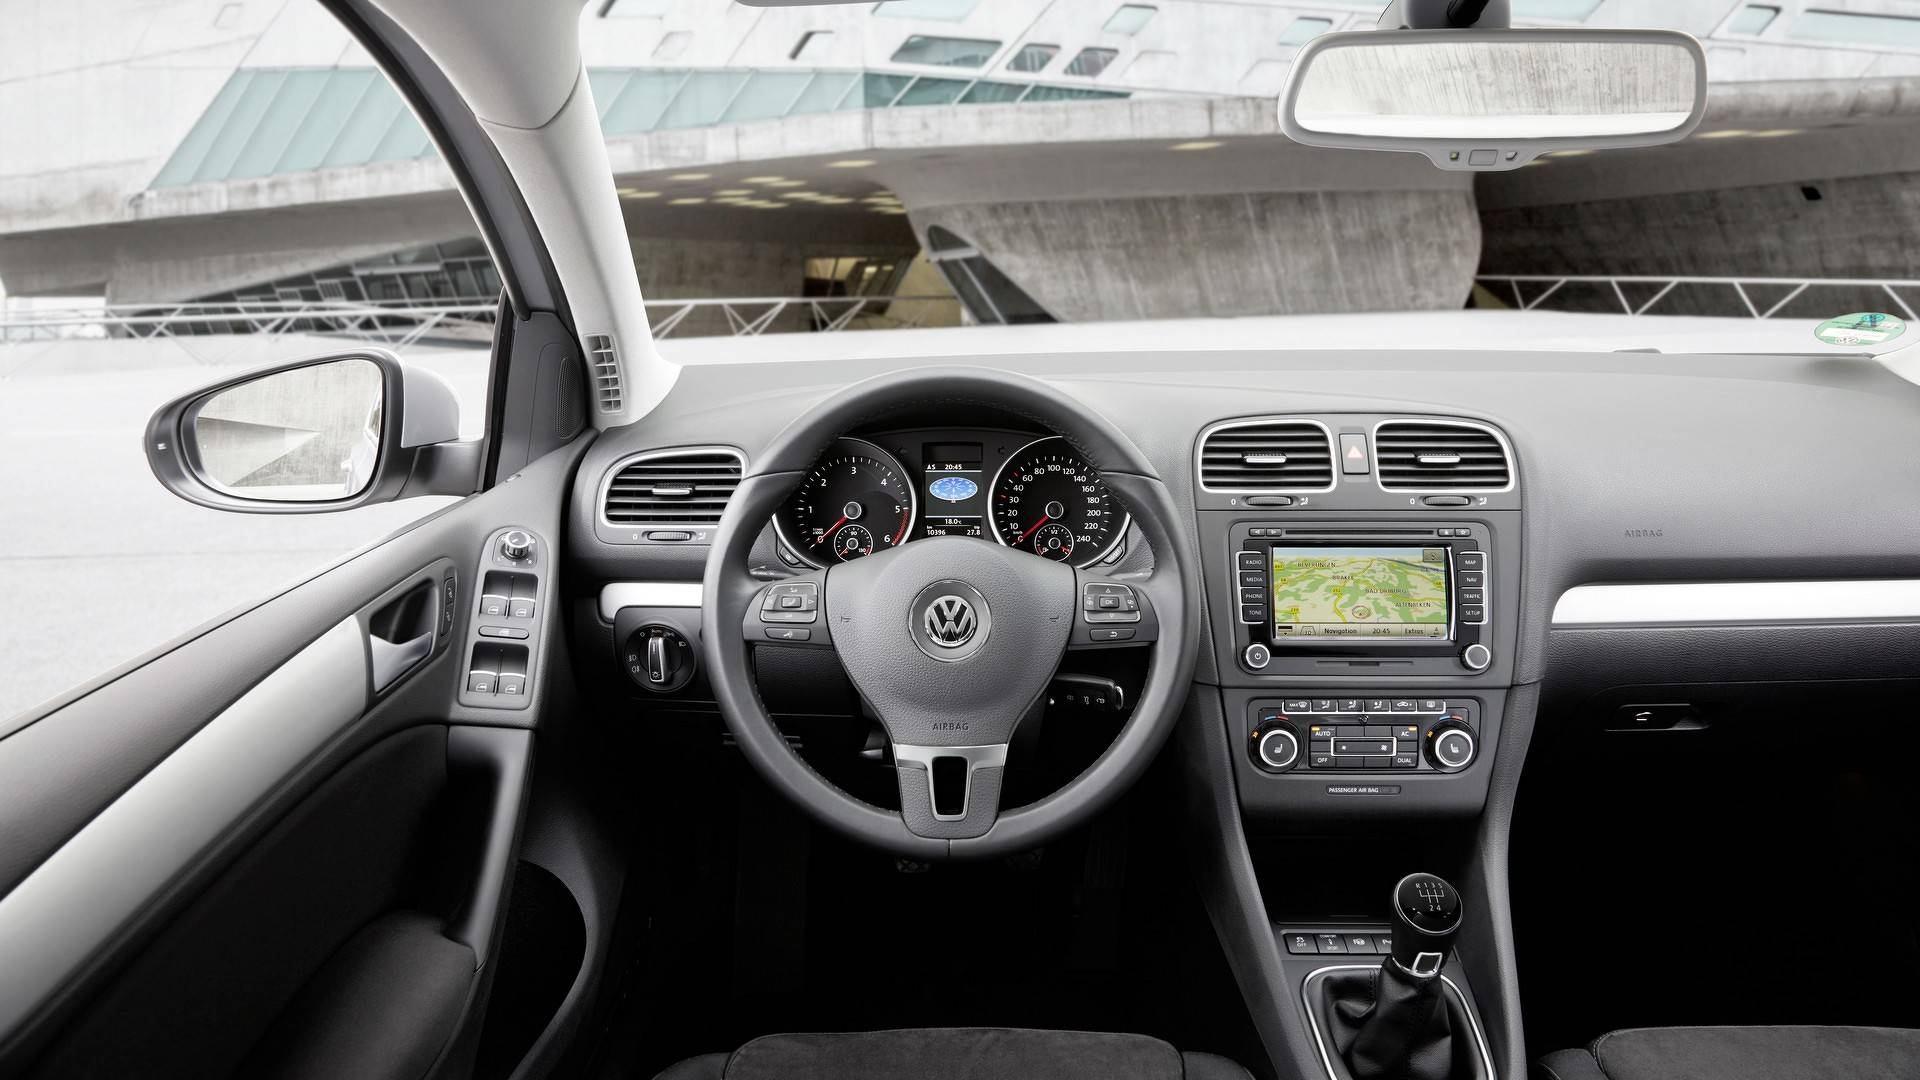 Tune In To See How The Vw Golf S Radio Has Evolved Over The Years